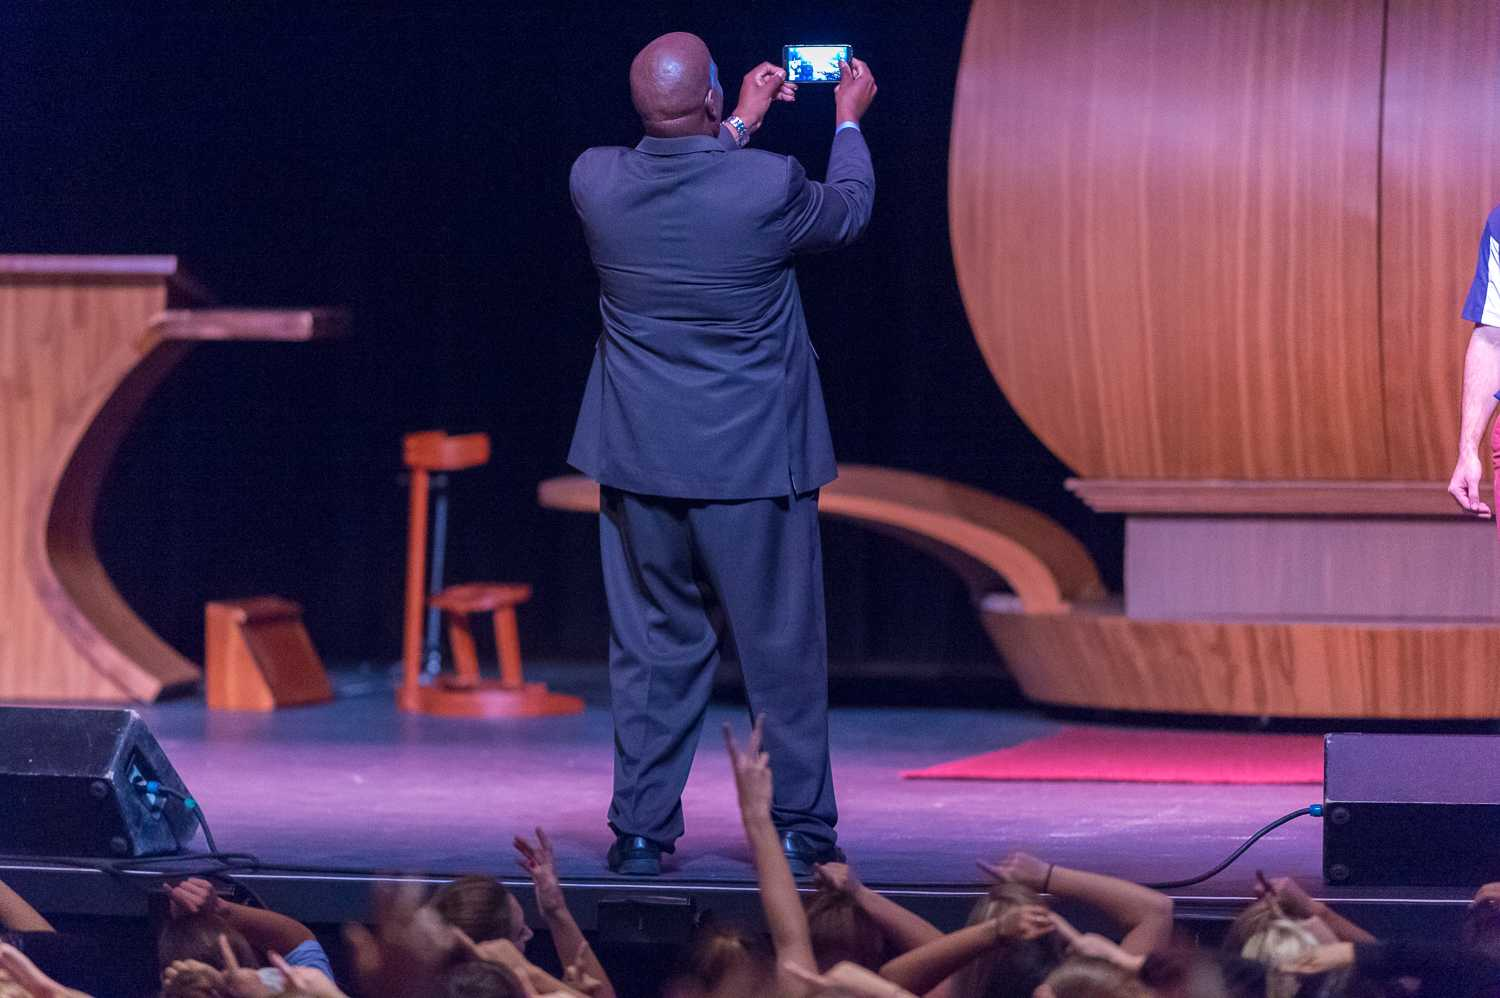 """Interim Vice President of Student Affairs Corey King took a selfie with the crowd before the Summit in hope of """"getting more hearts."""" Photo by Max Jackson 